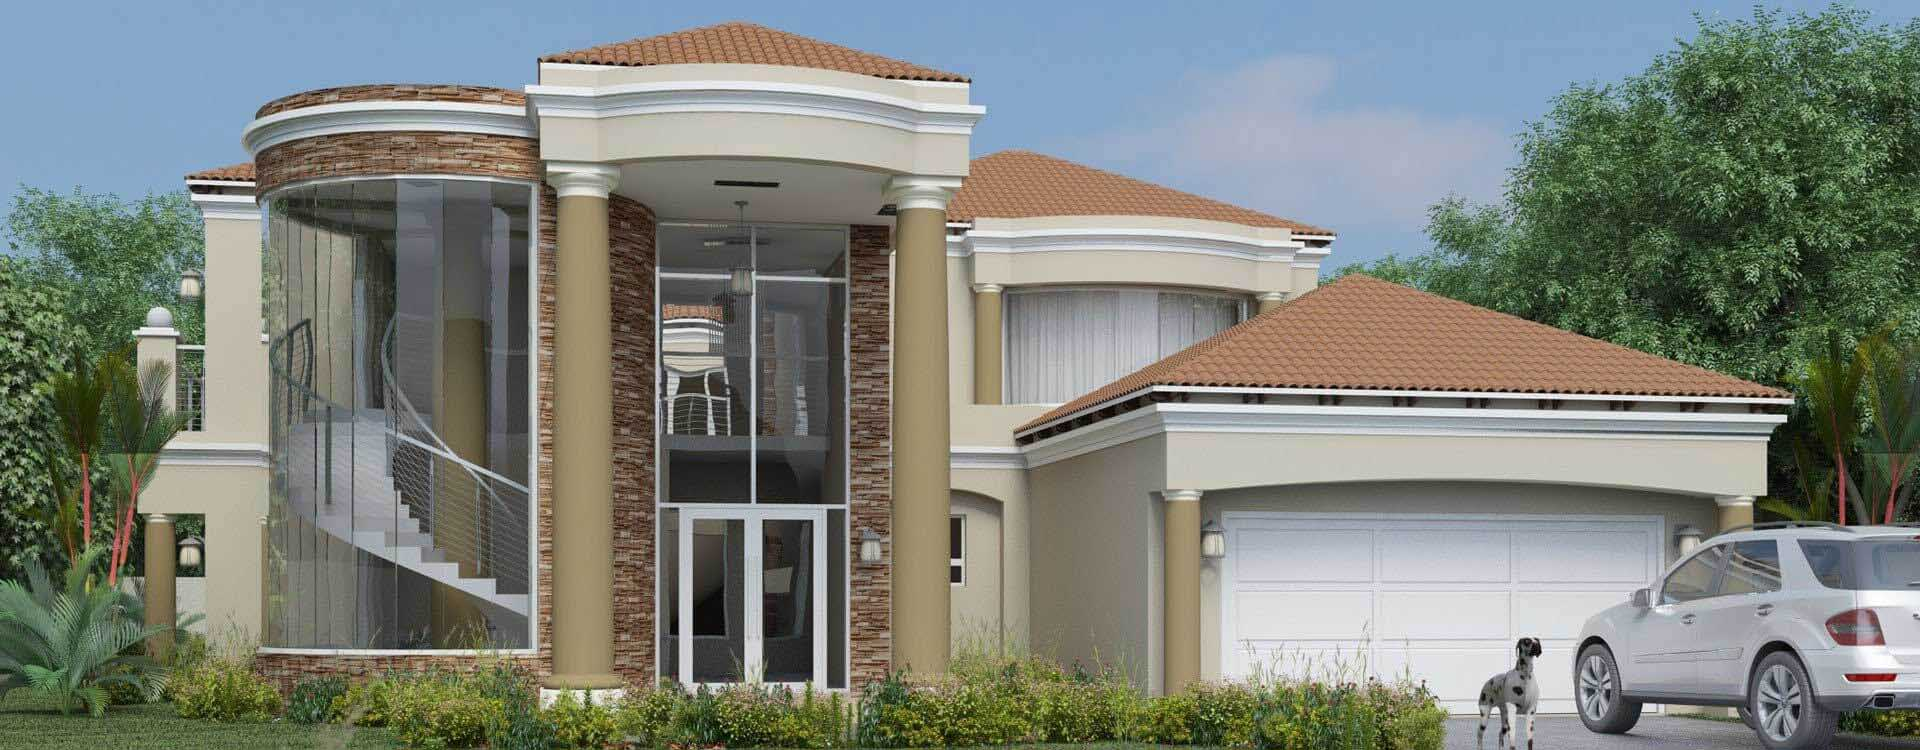 4 Bedroom House Plan  South African House Designs